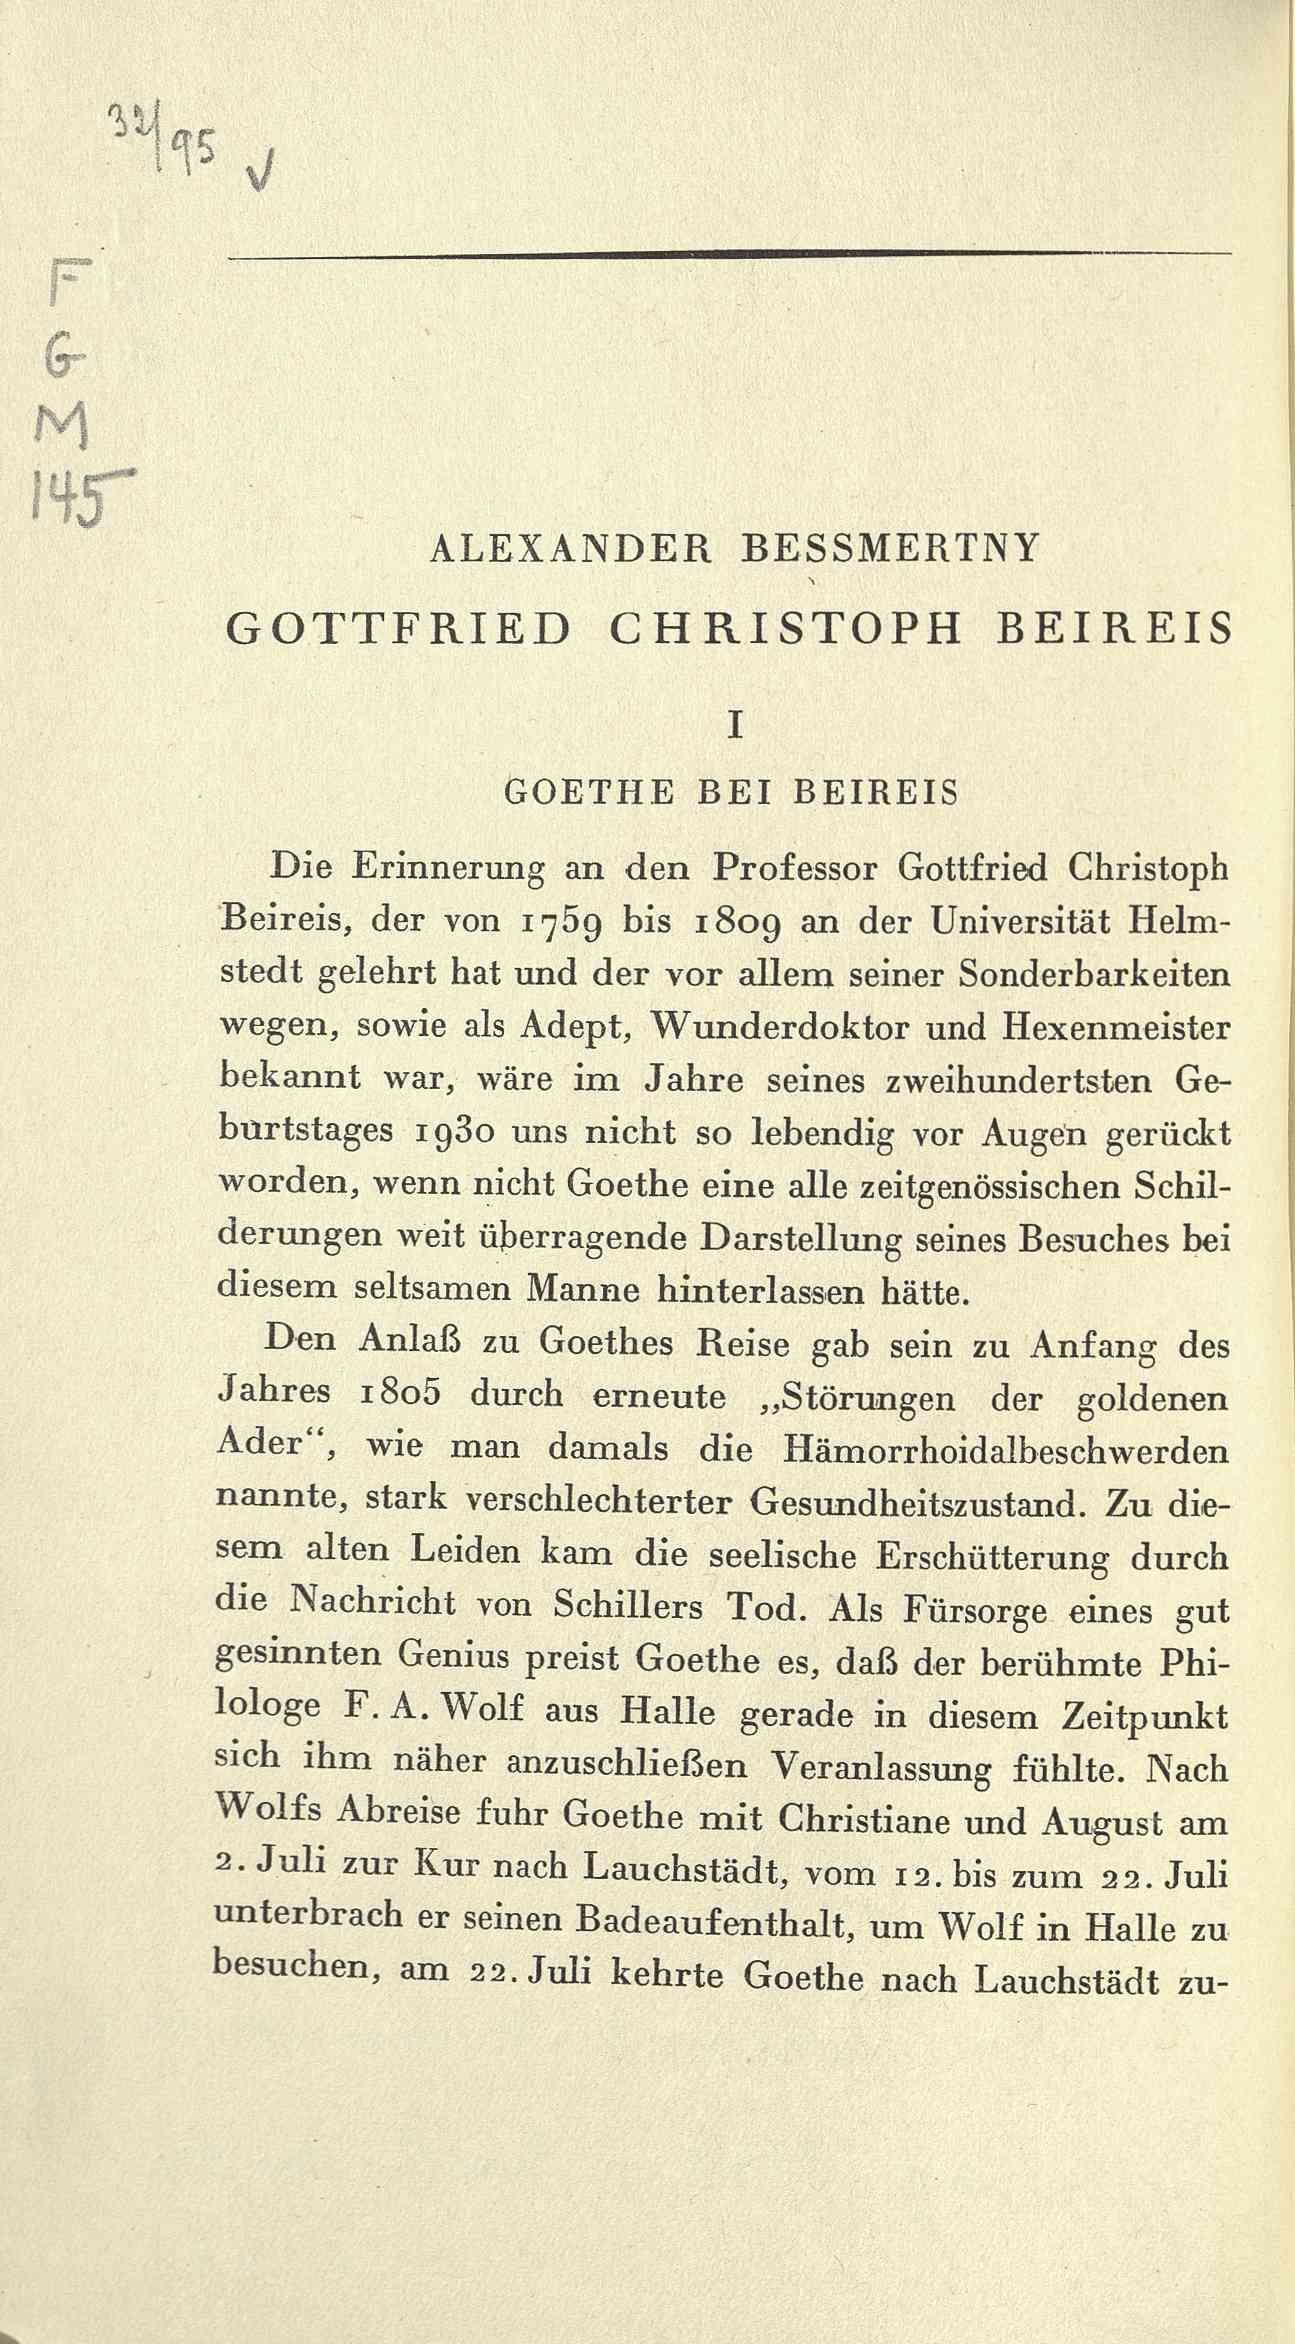 Gottfried Christoph Beireis